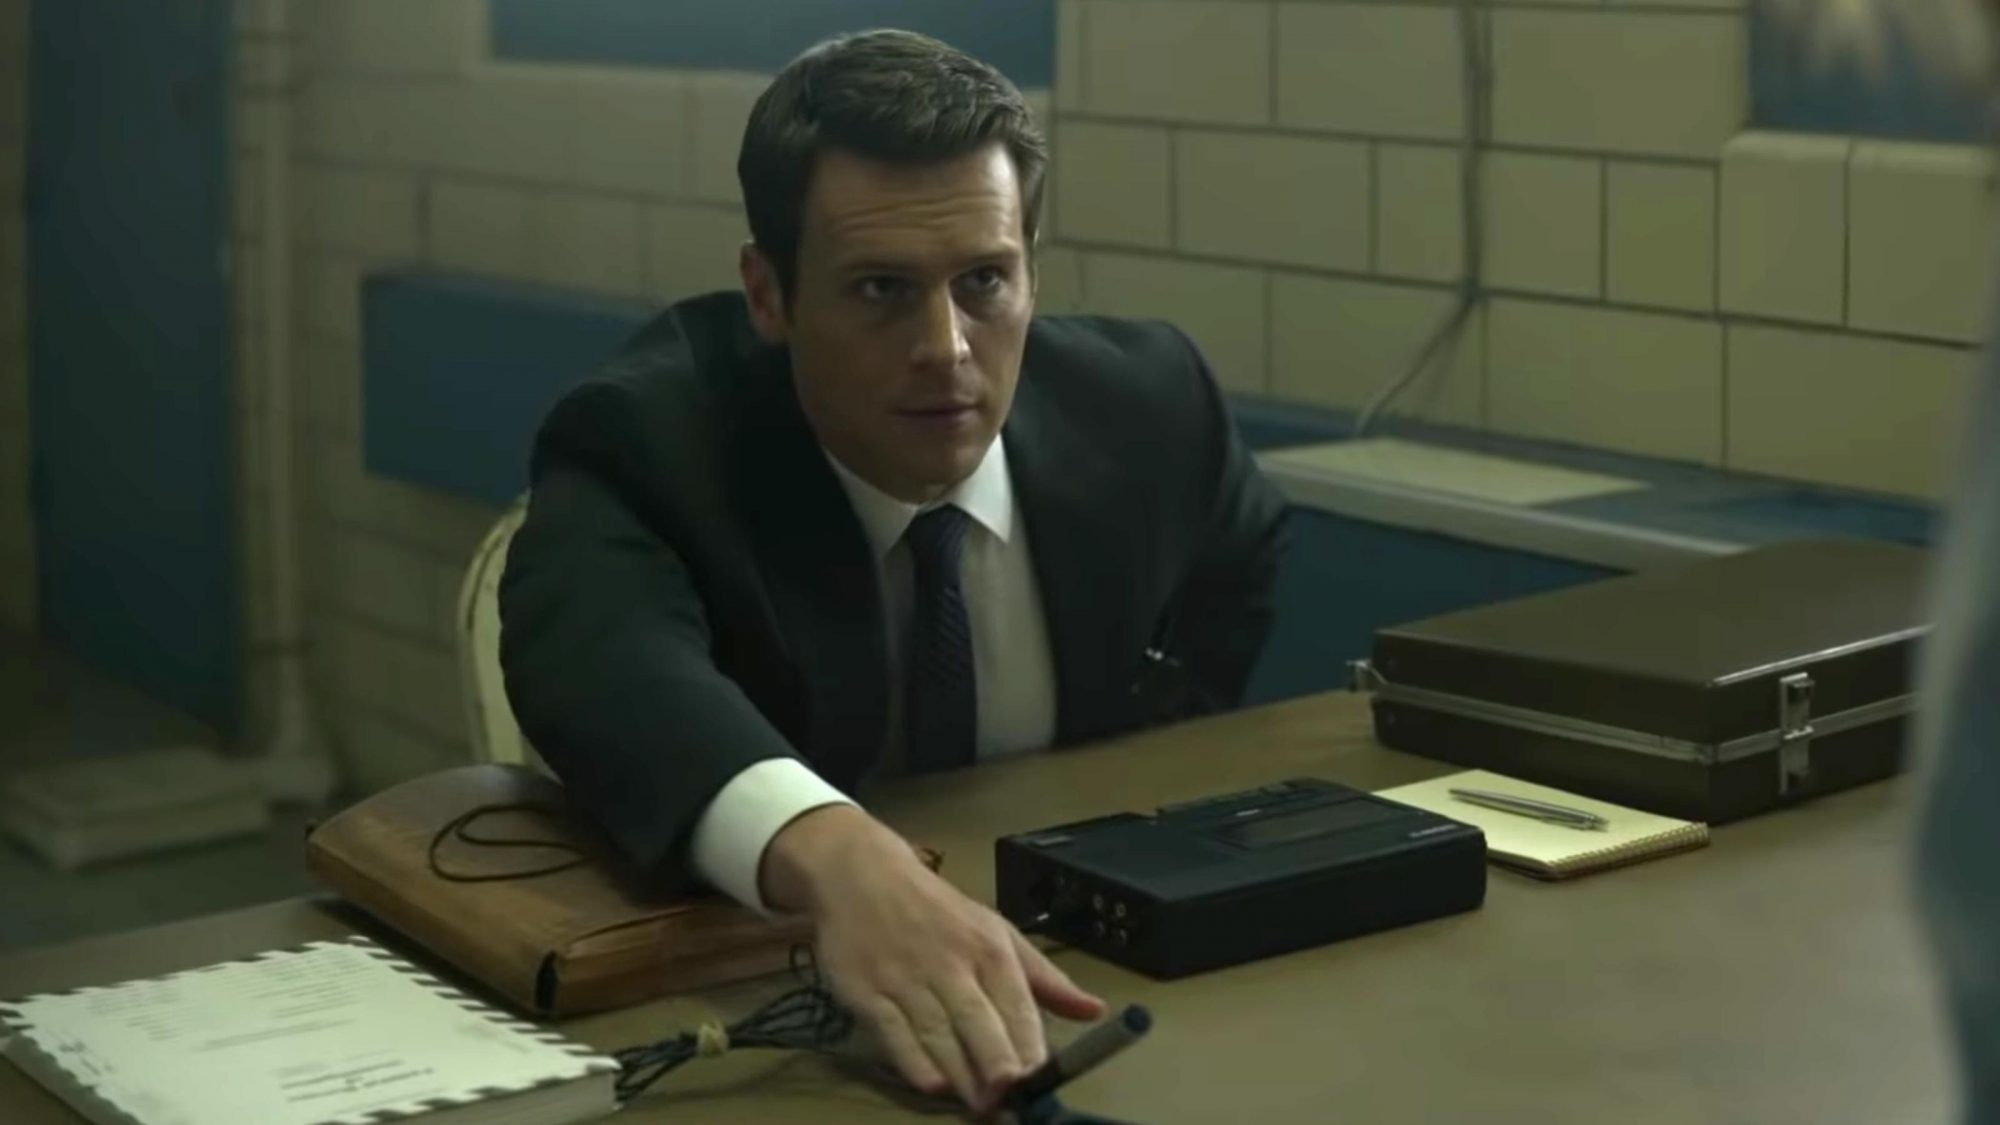 MINDHUNTER | Season 2 | Official Teaser (screen grab) https://www.youtube.com/watch?v=wIazdDw4tao CR: Netflix